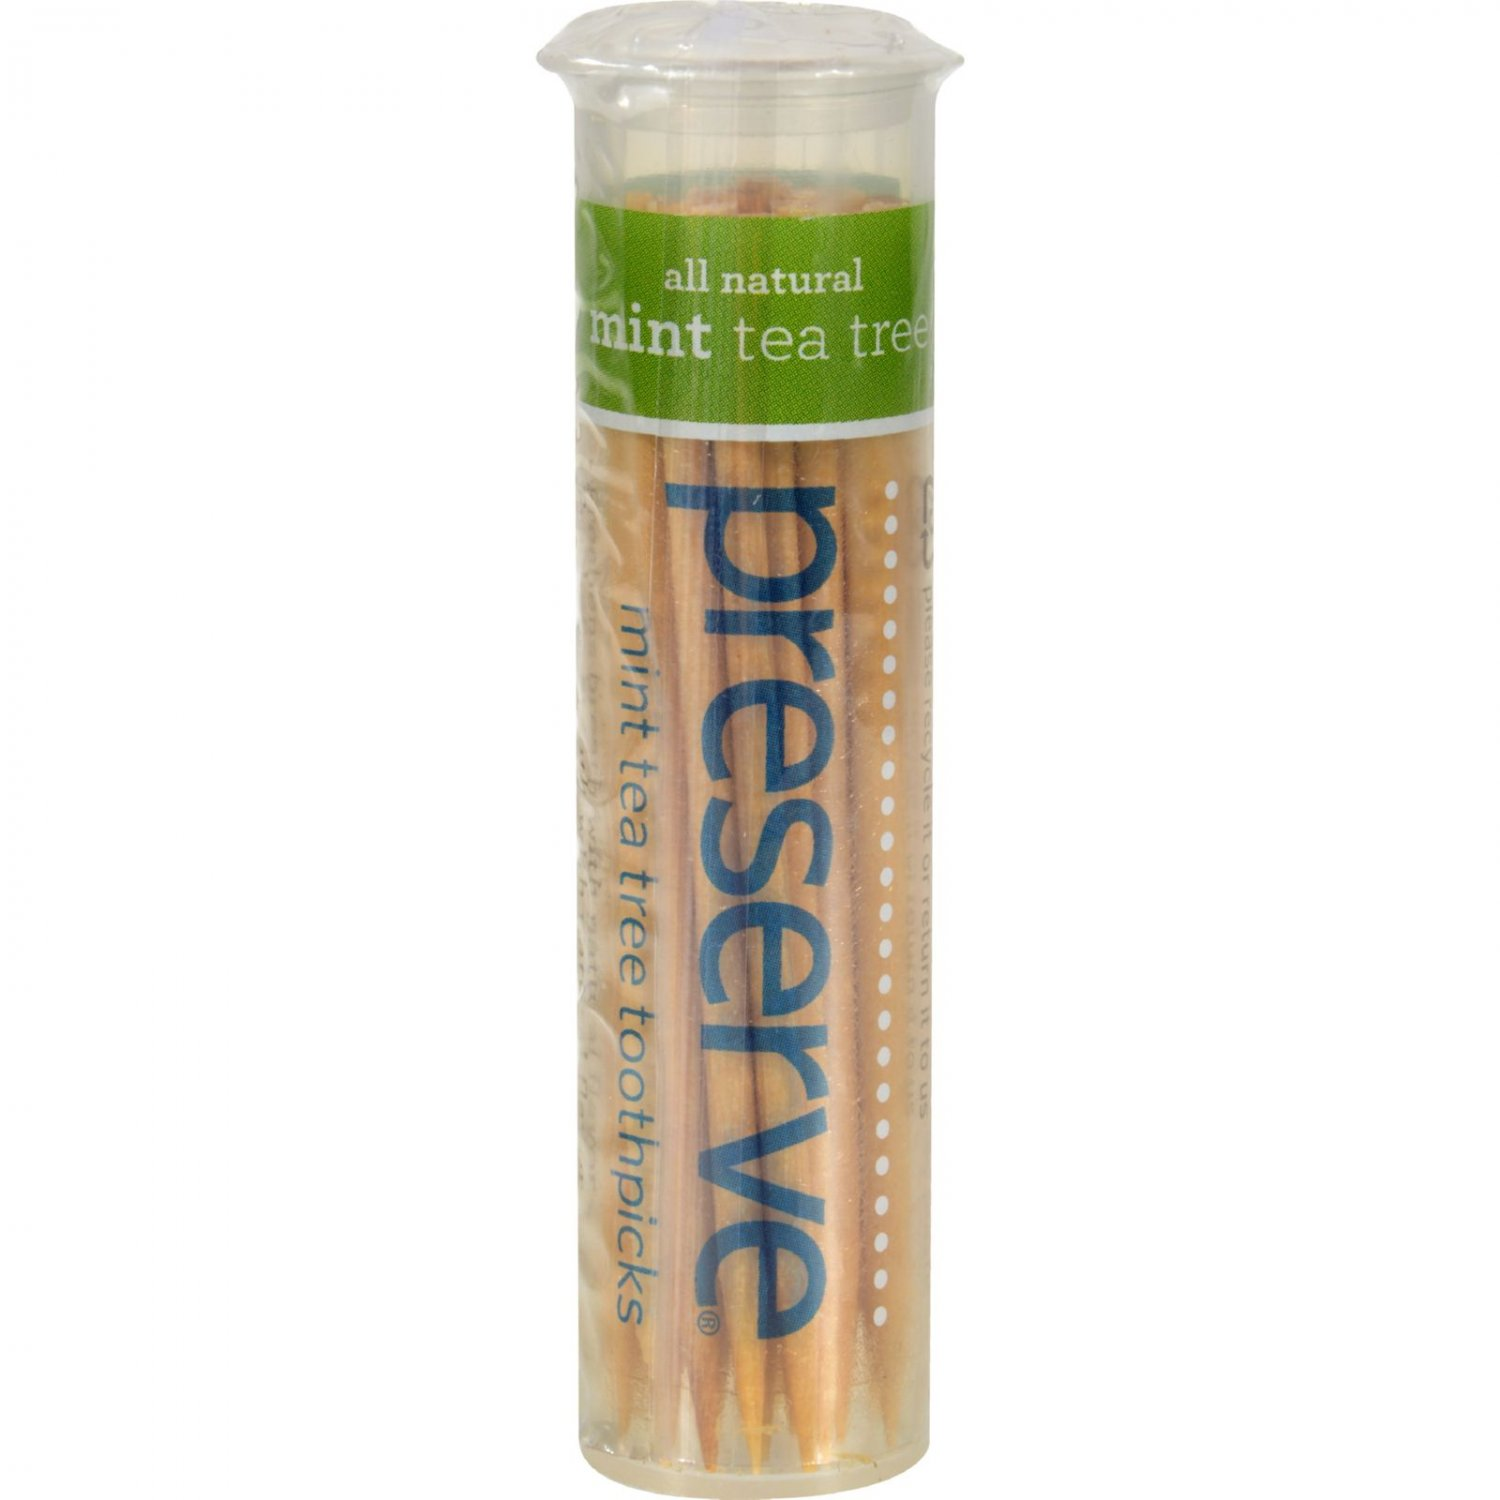 Preserve Flavored Toothpicks Mint Tea Tree - 35 Pieces - Case of 24